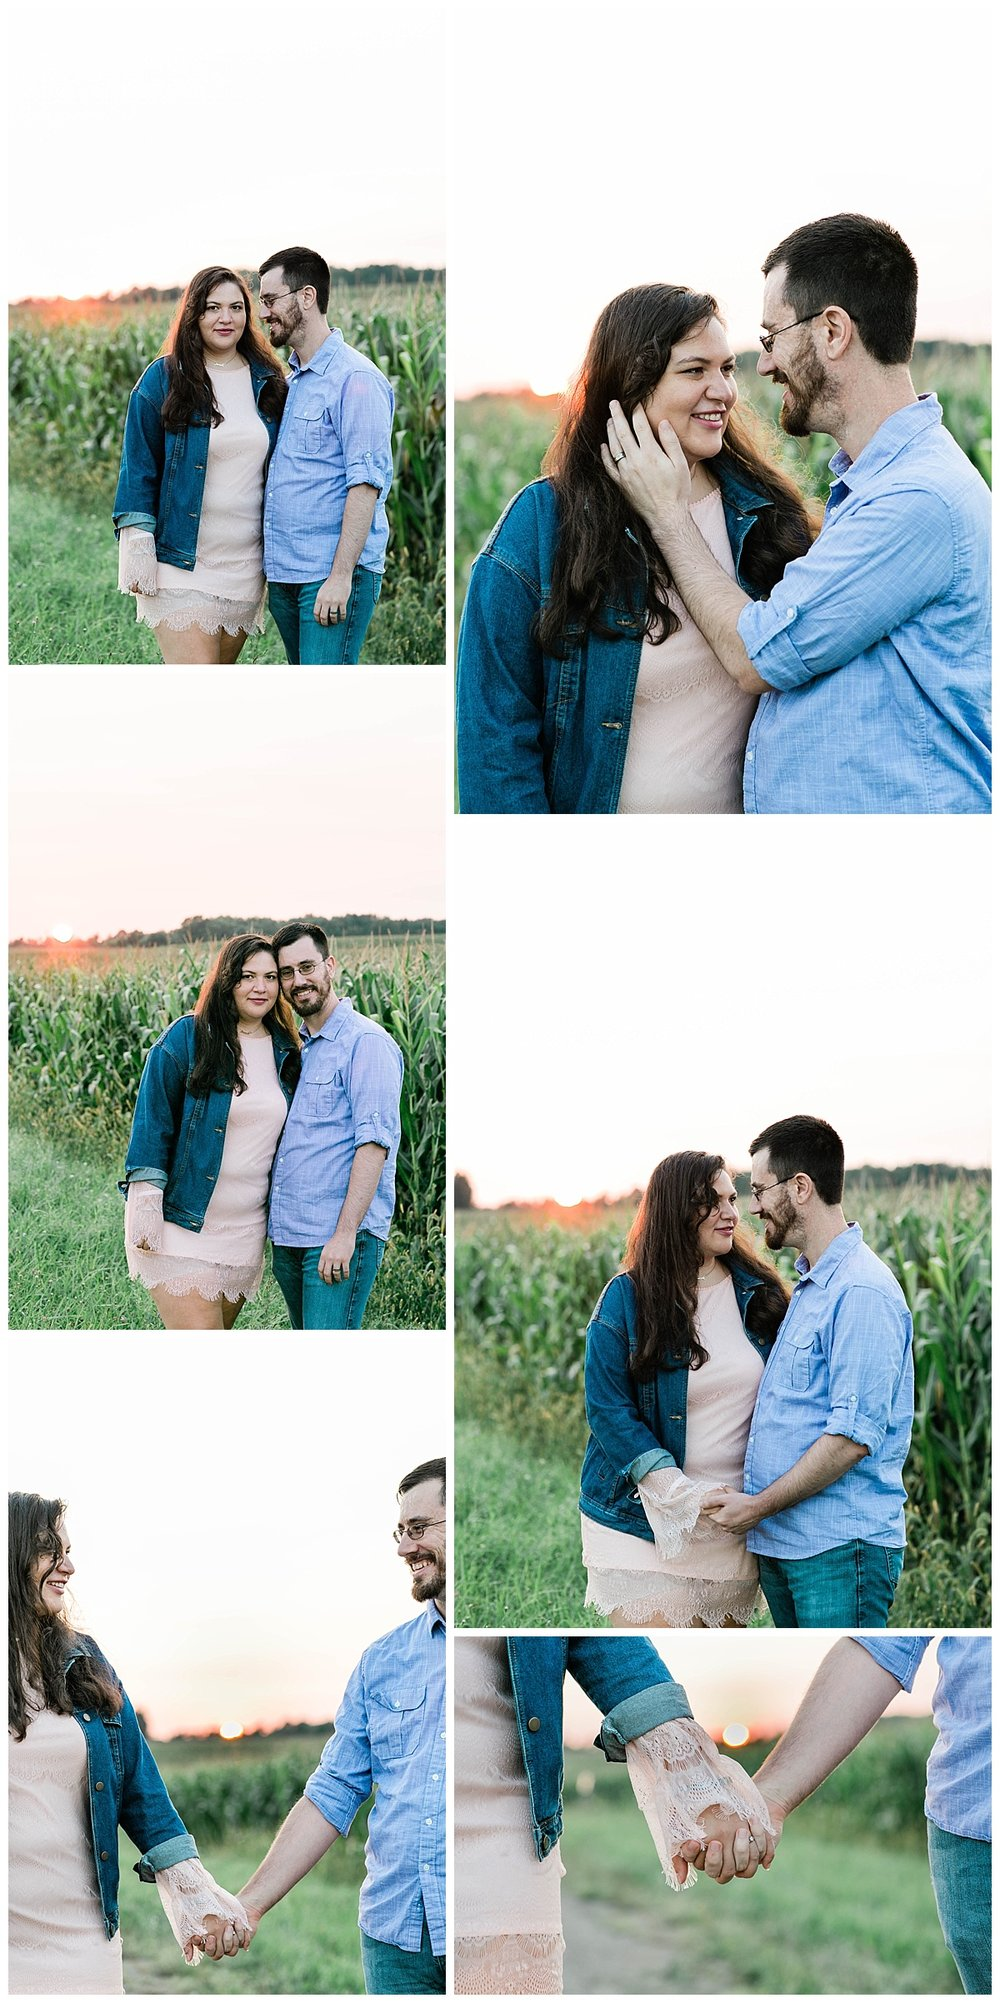 Amanda and Justin - Letchworth state Park engagement photos - Lass and Beau-9070.jpg